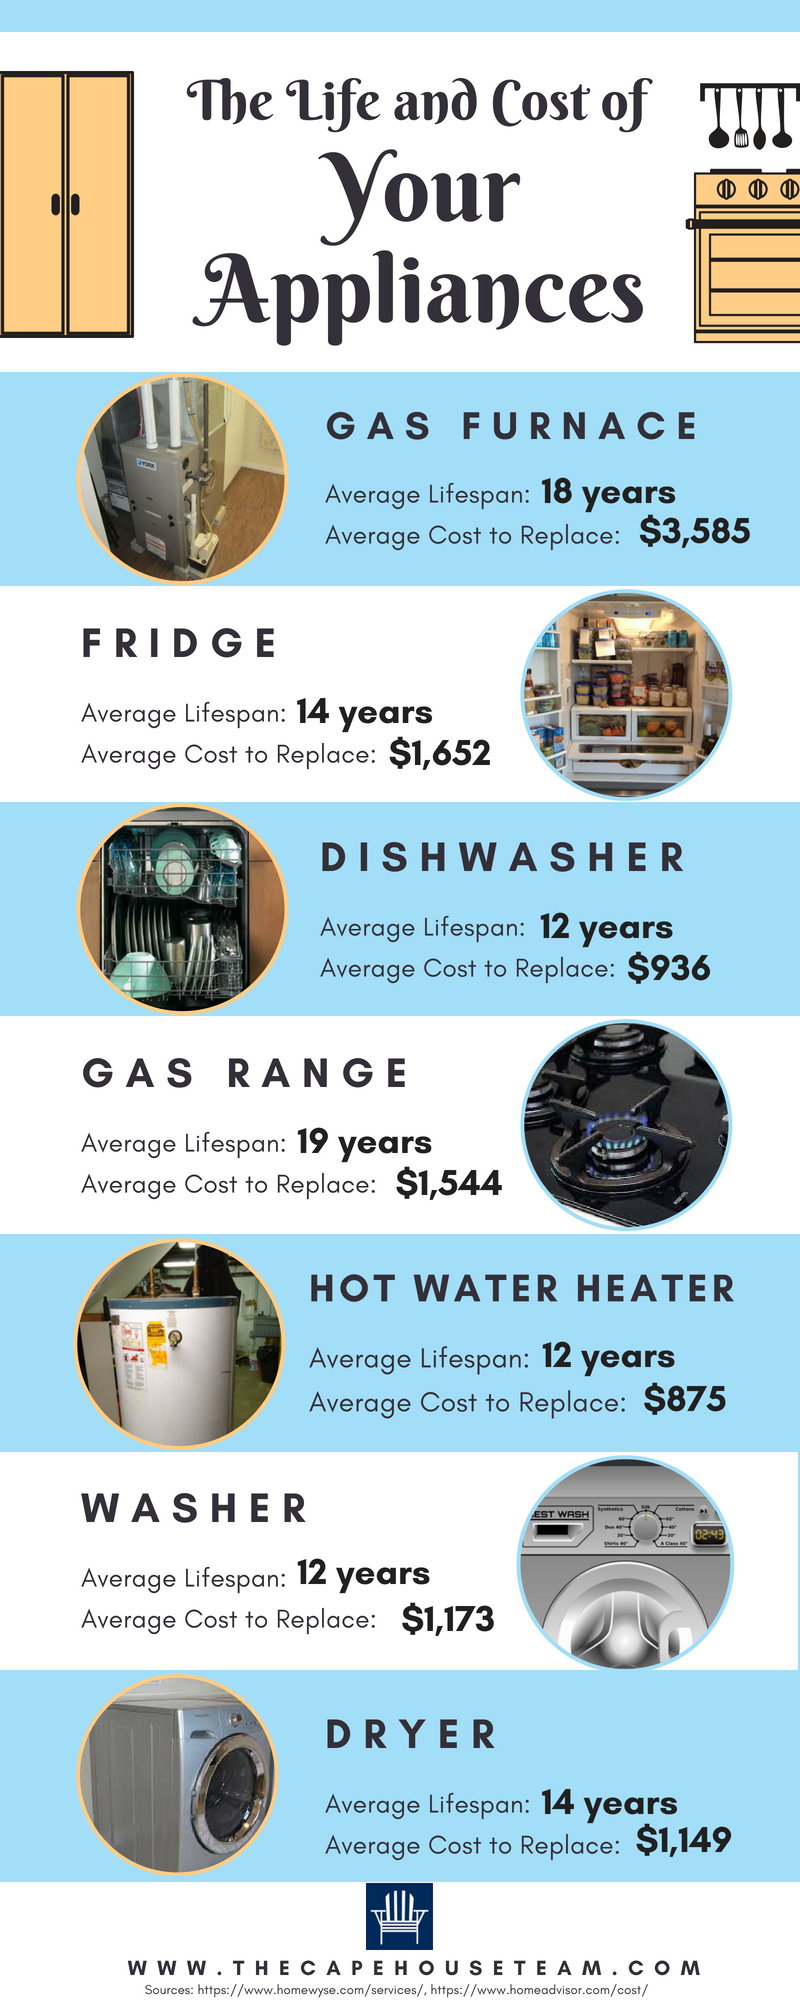 The Life and Cost of Your Home Appliances and Systems 2018